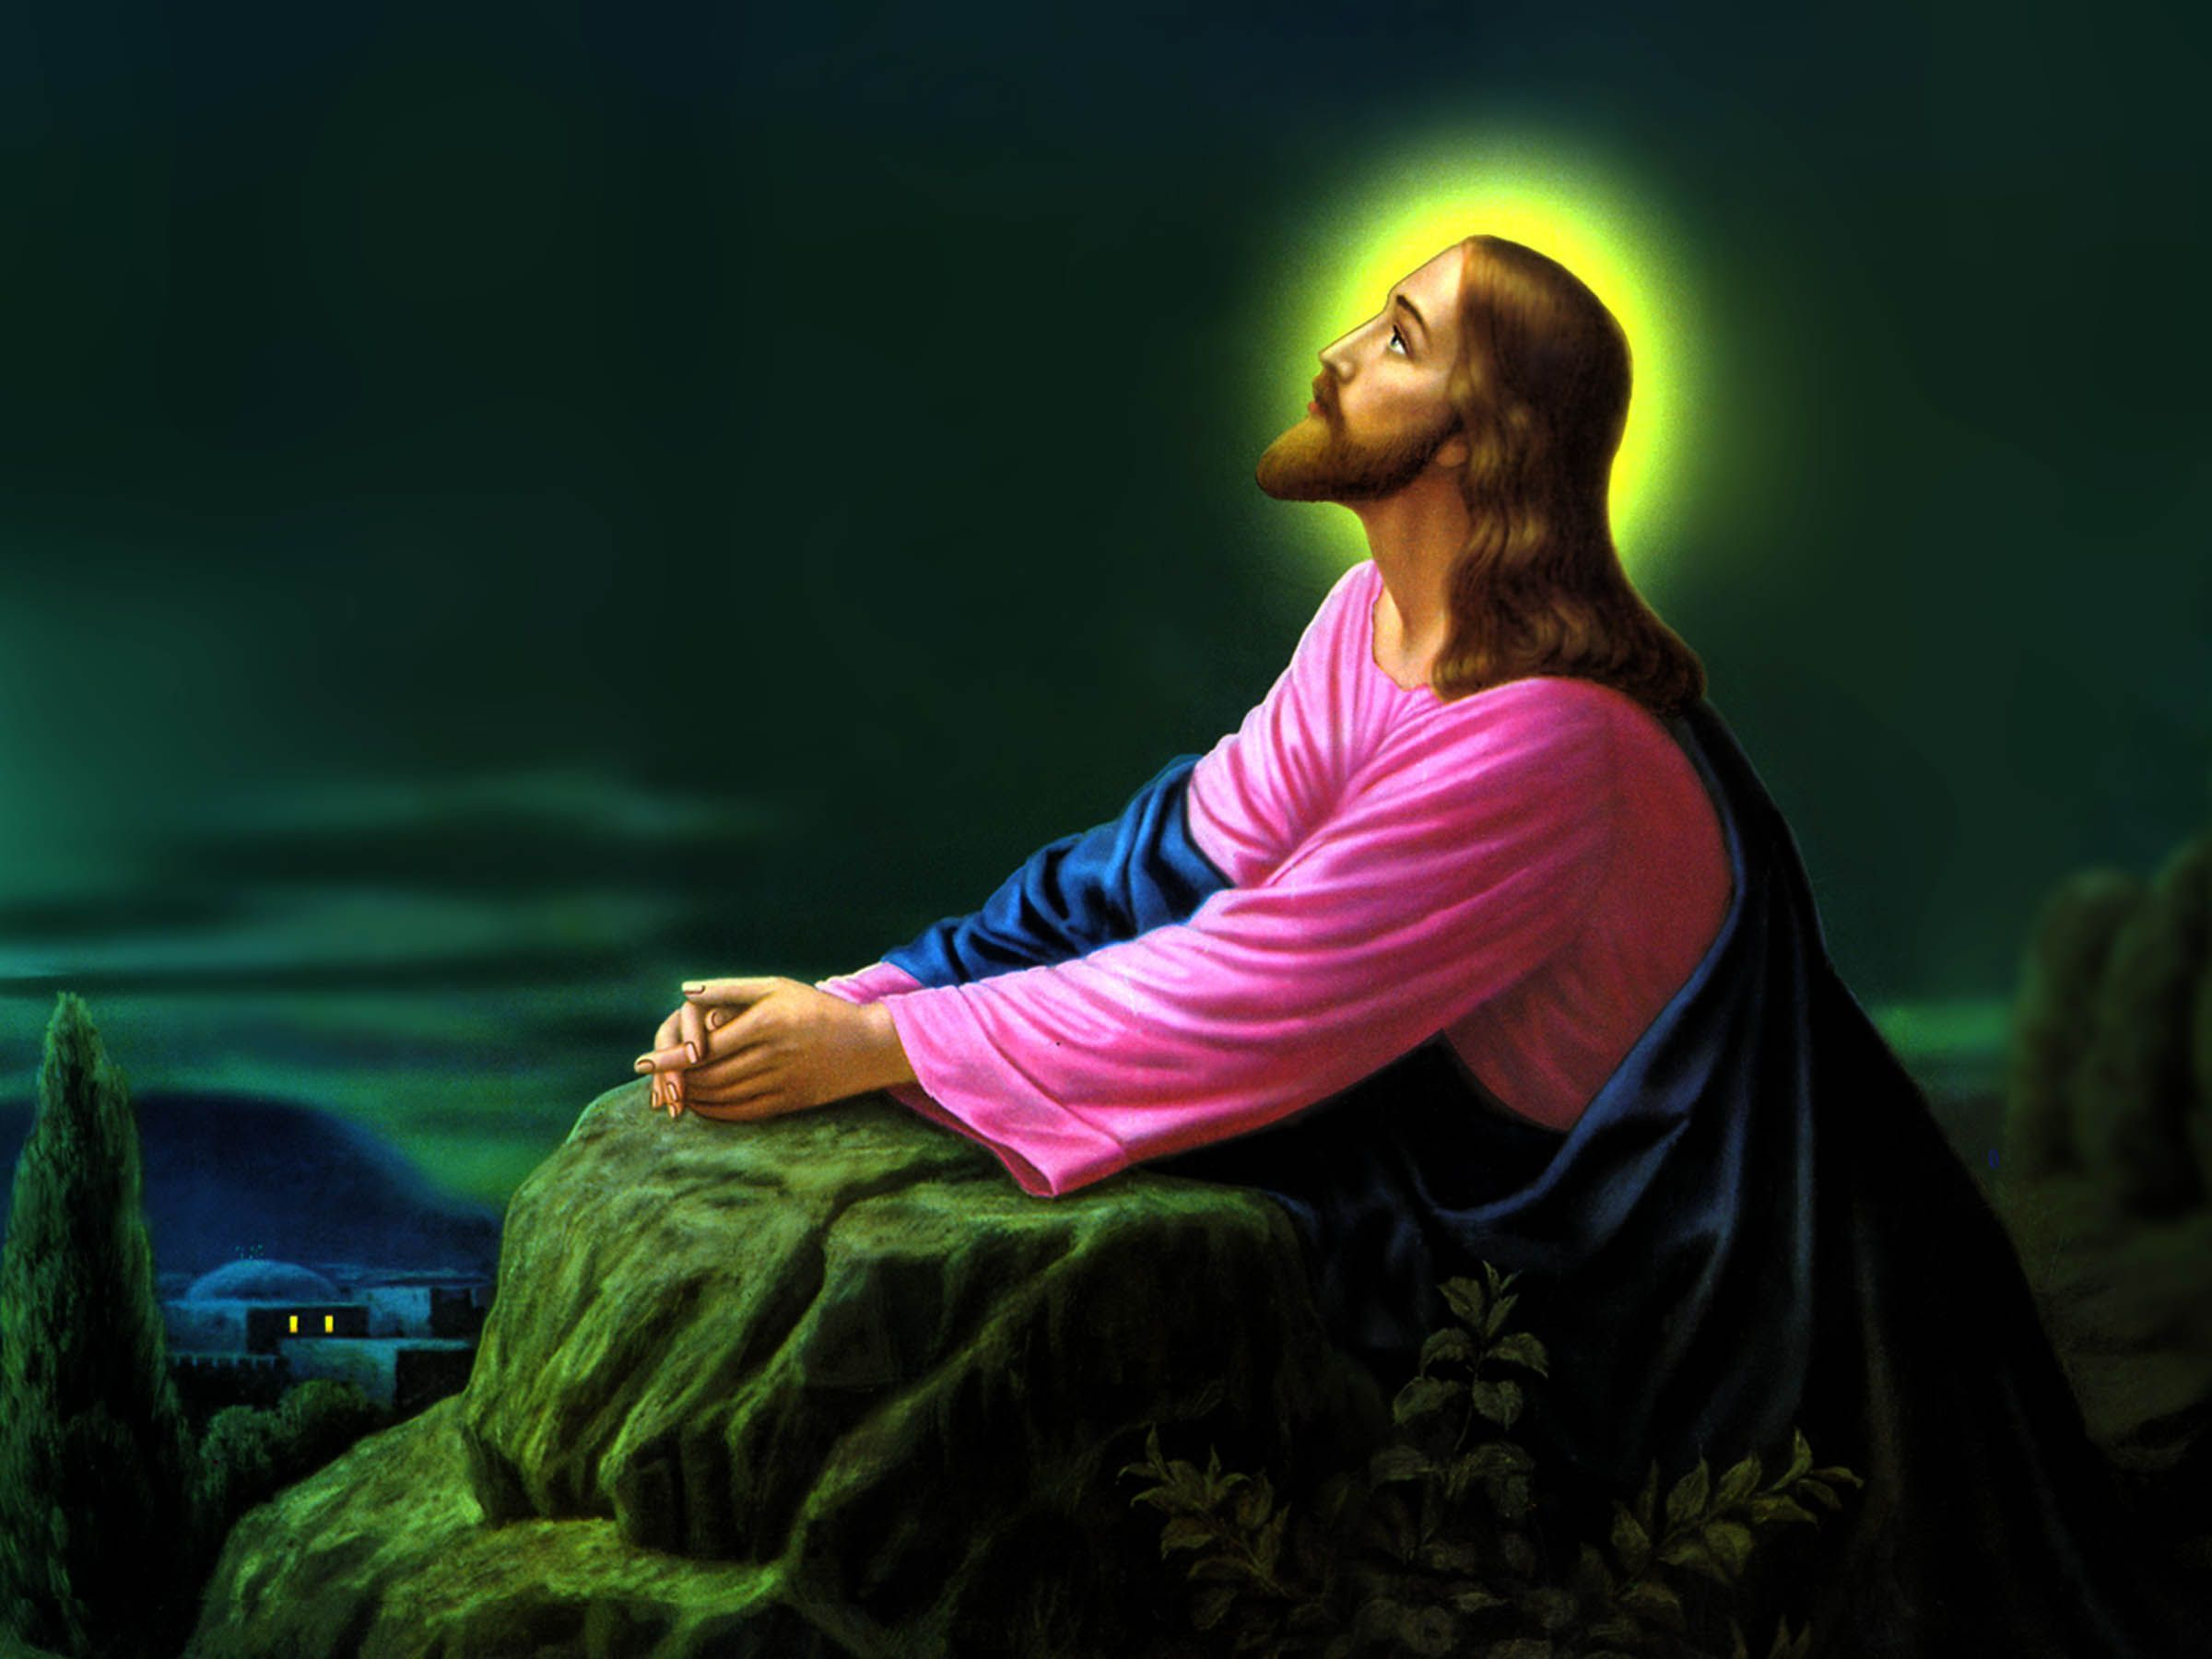 Jesus Images HD Wallpaper